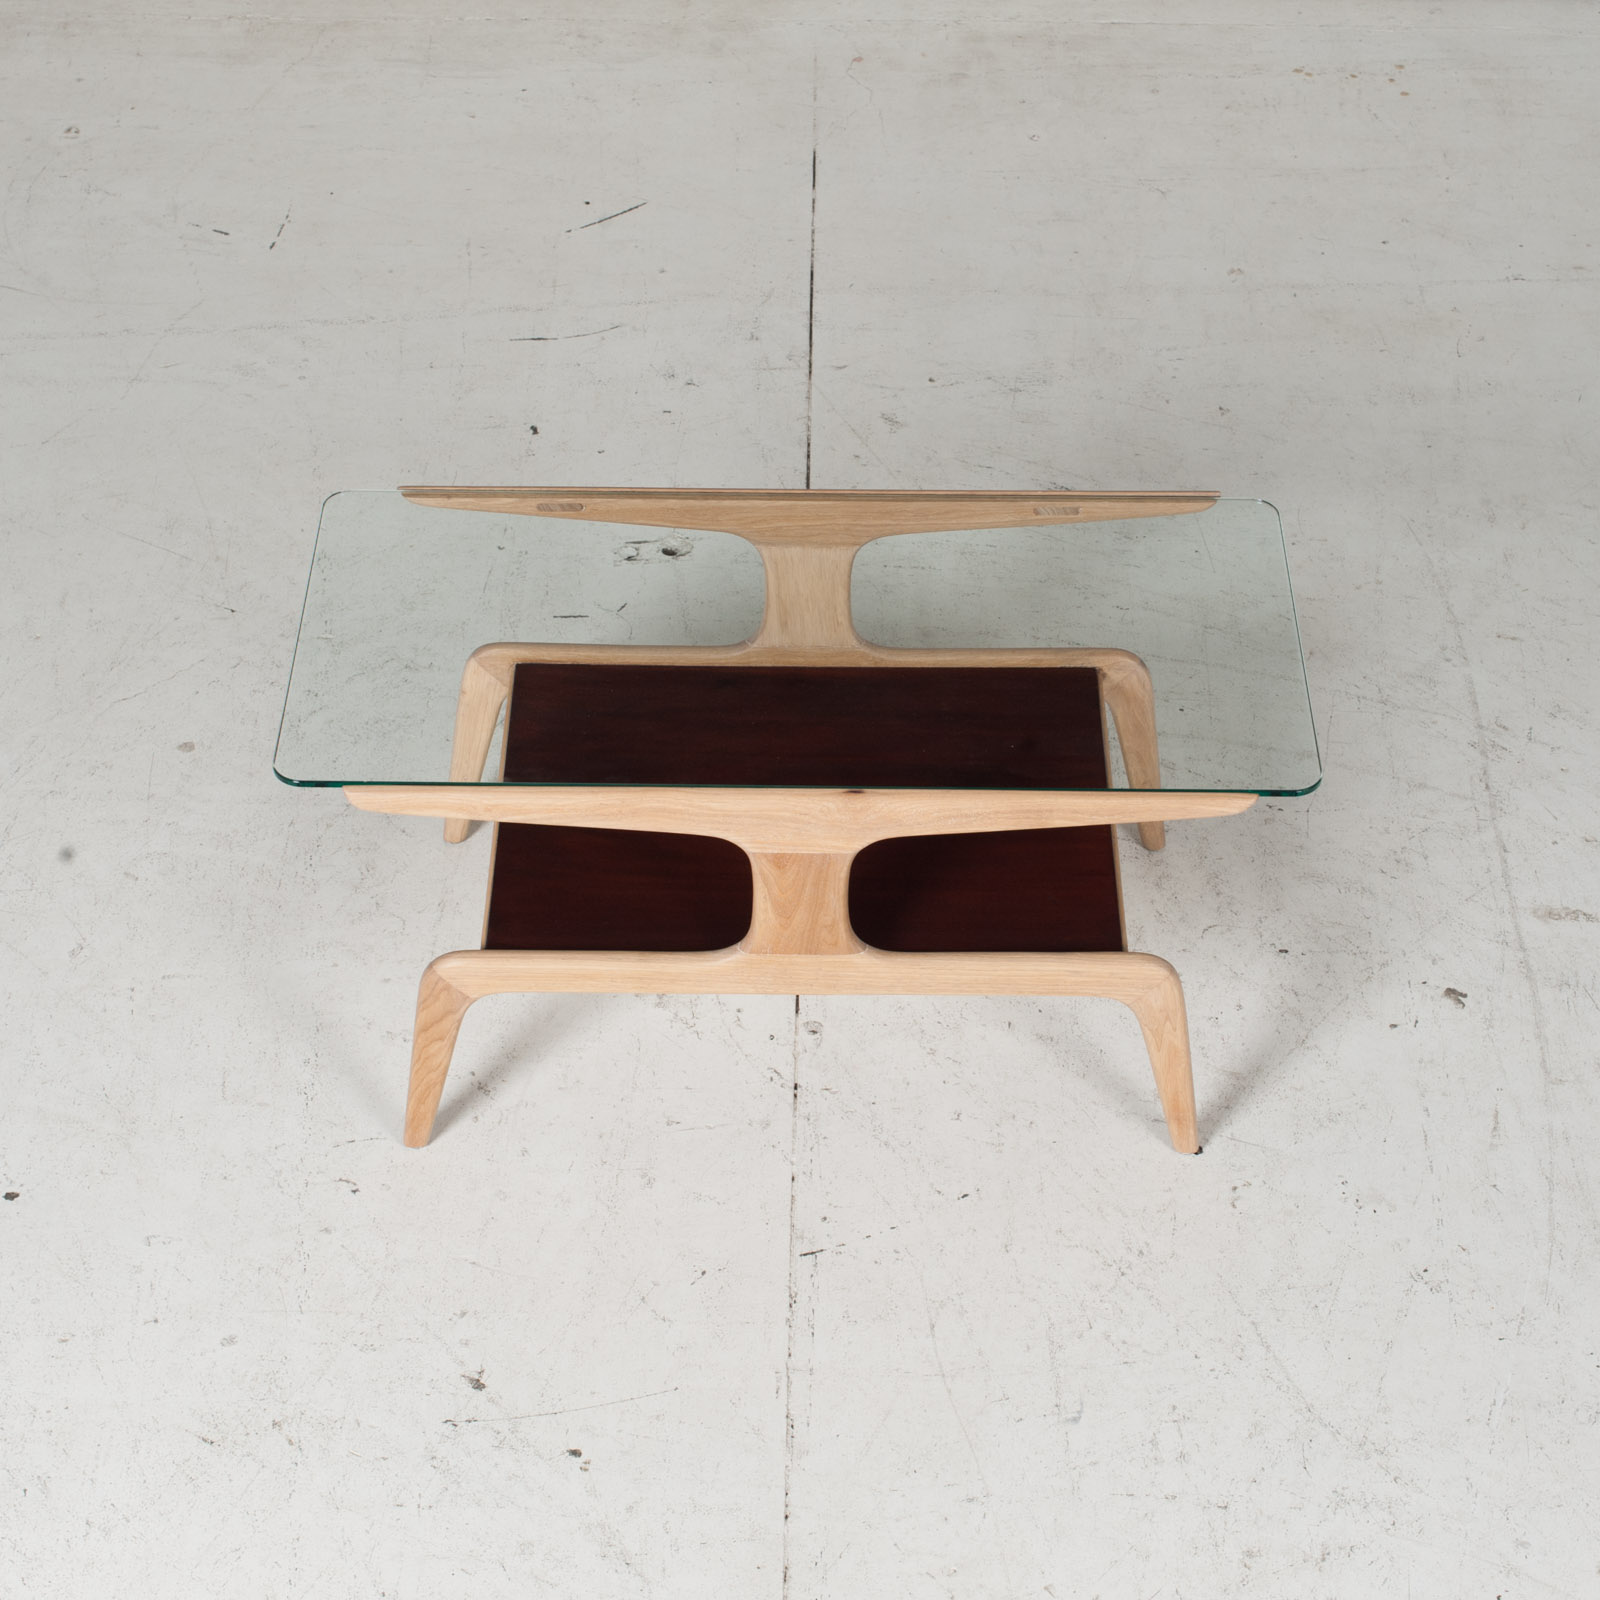 Coffee Table By Gio Ponti For Domus Nova, 1920s, Italy 3